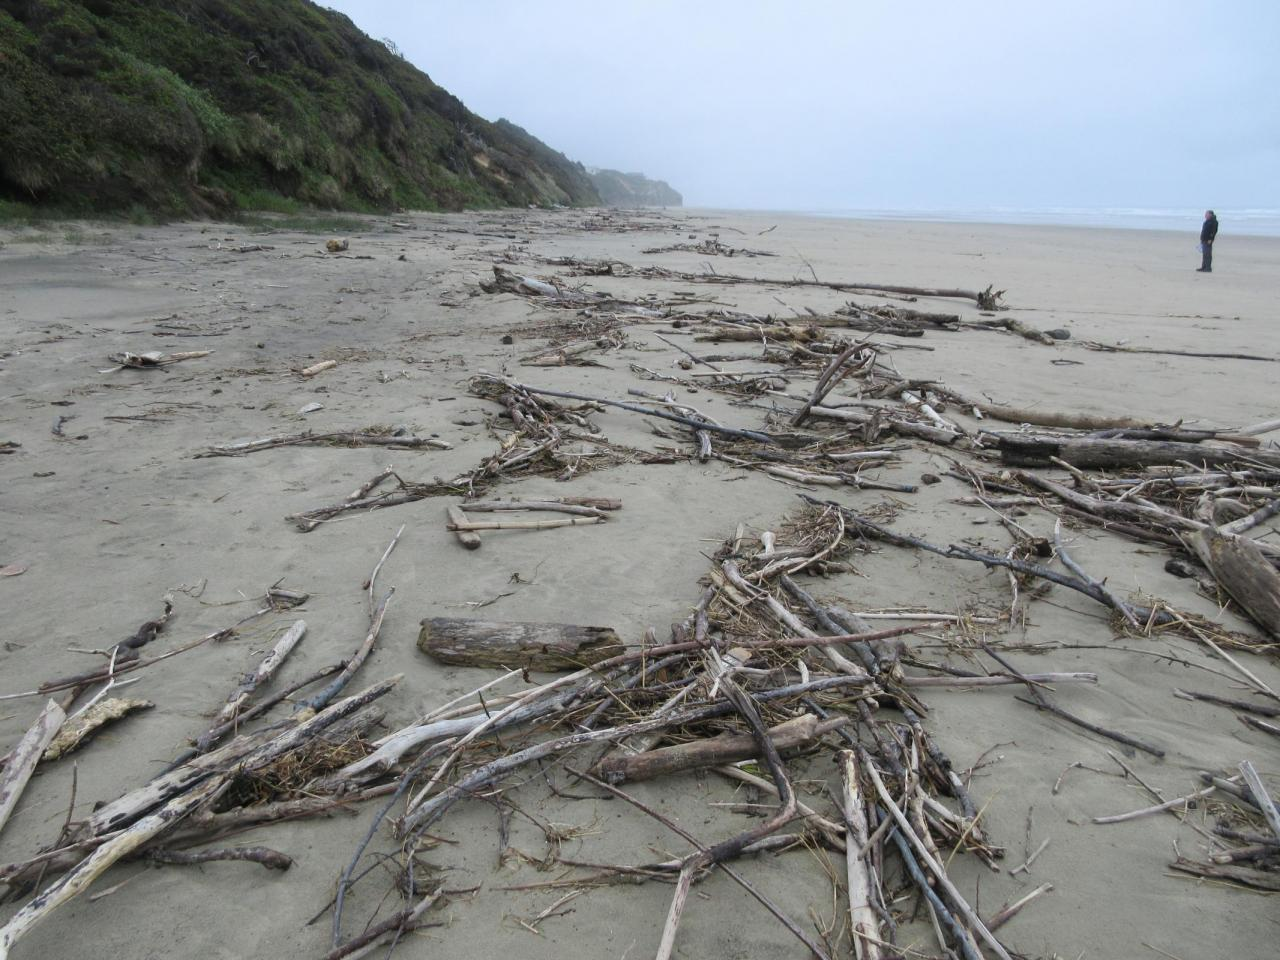 Beach littered with wood pieces